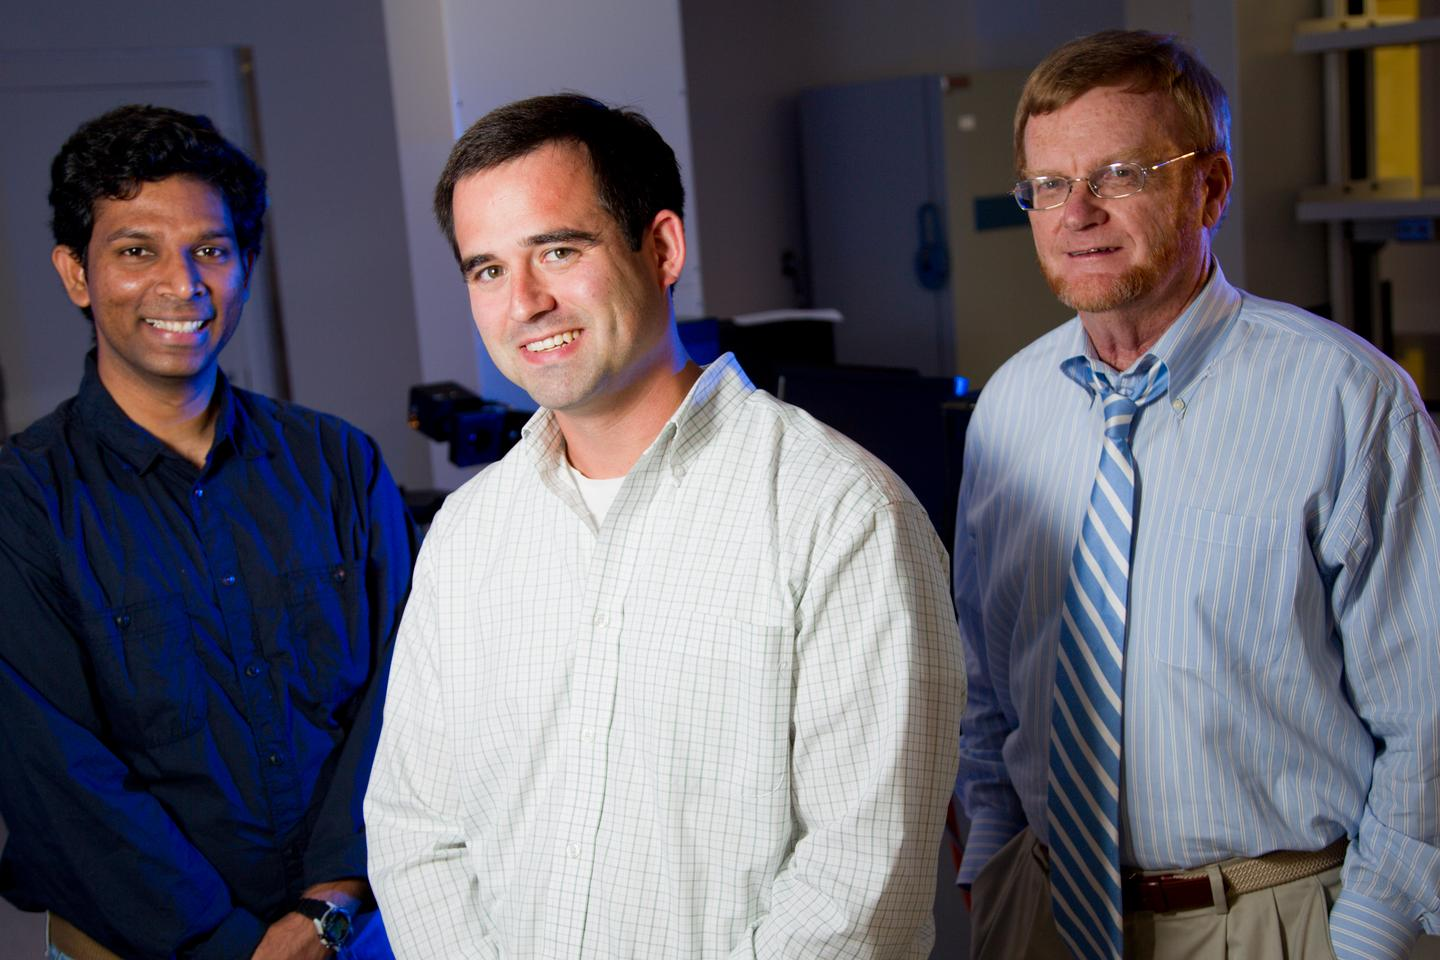 Antibacterial coating inventor Jason Locklin is surrounded by his project team; (left) Vikram Dhende, graduate student, and (right) Ian Hardin, a professor in the College of Family and Consumer Sciences (Photo: University of Georgia)